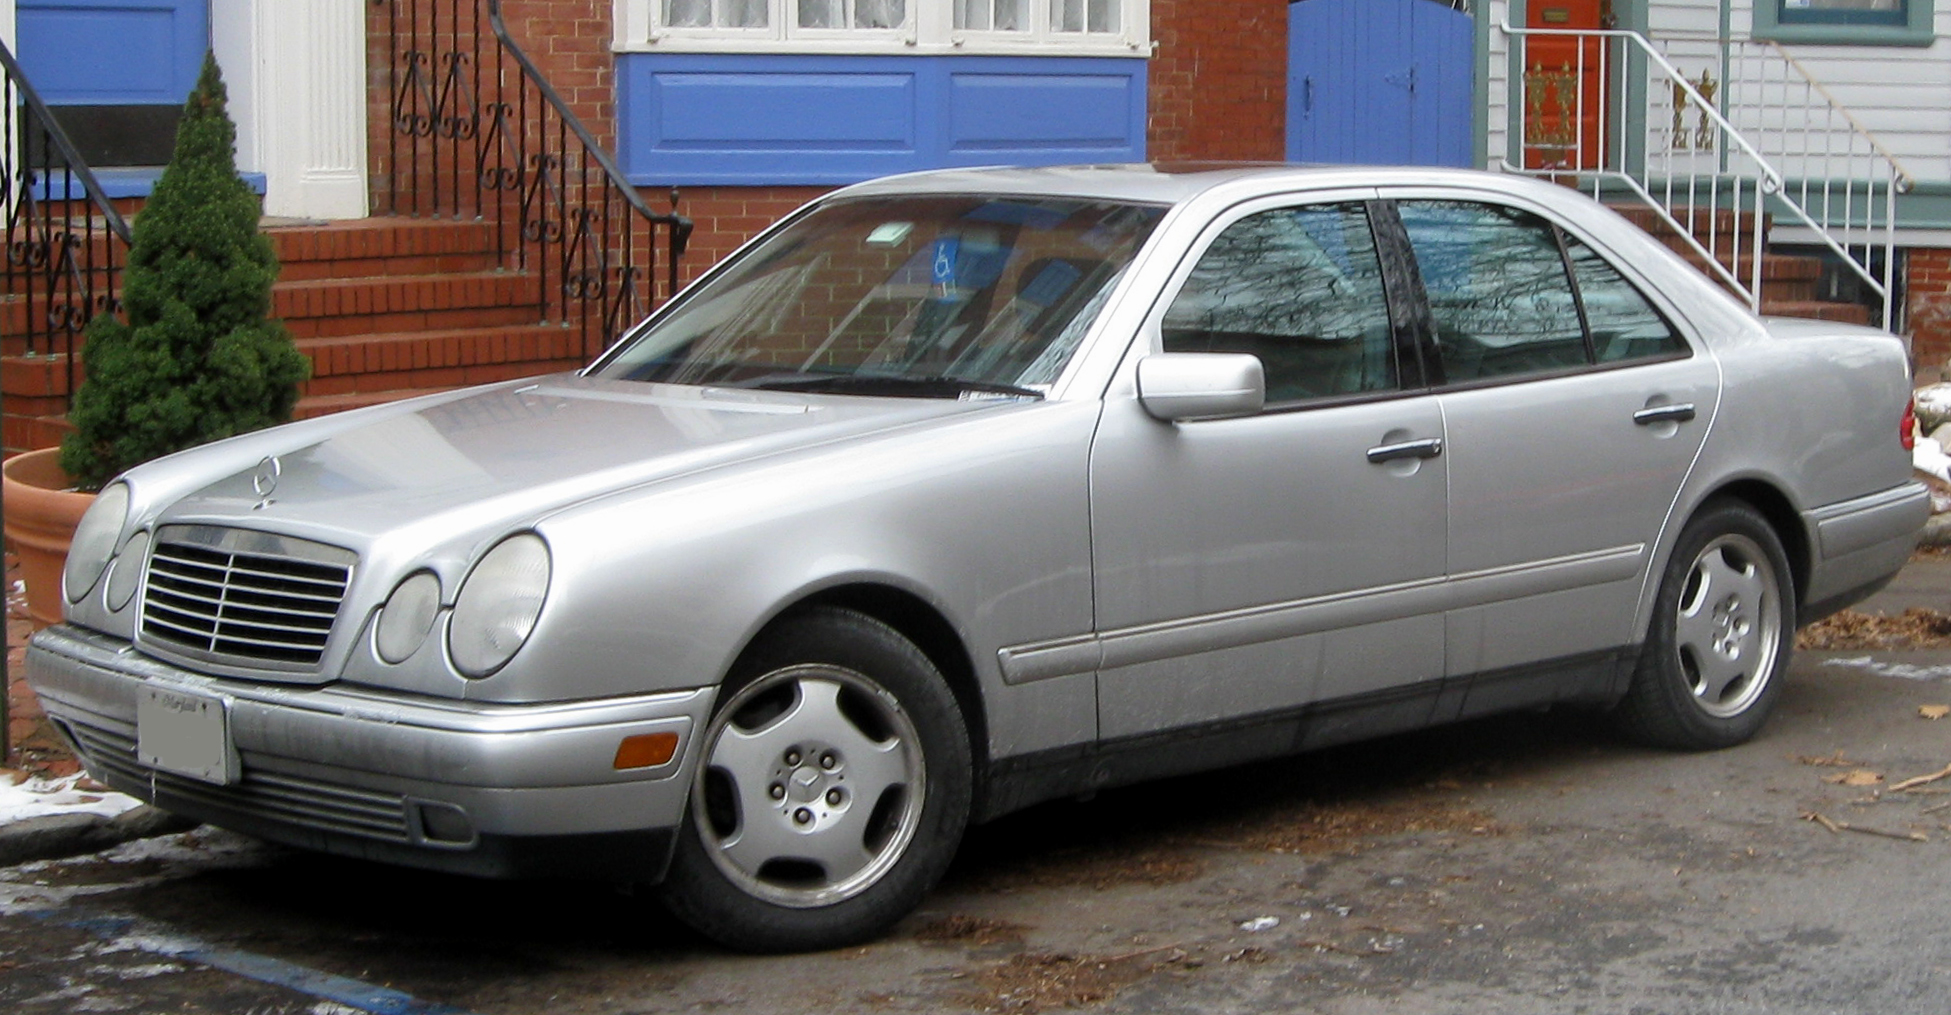 File:Mercedes-Benz E430